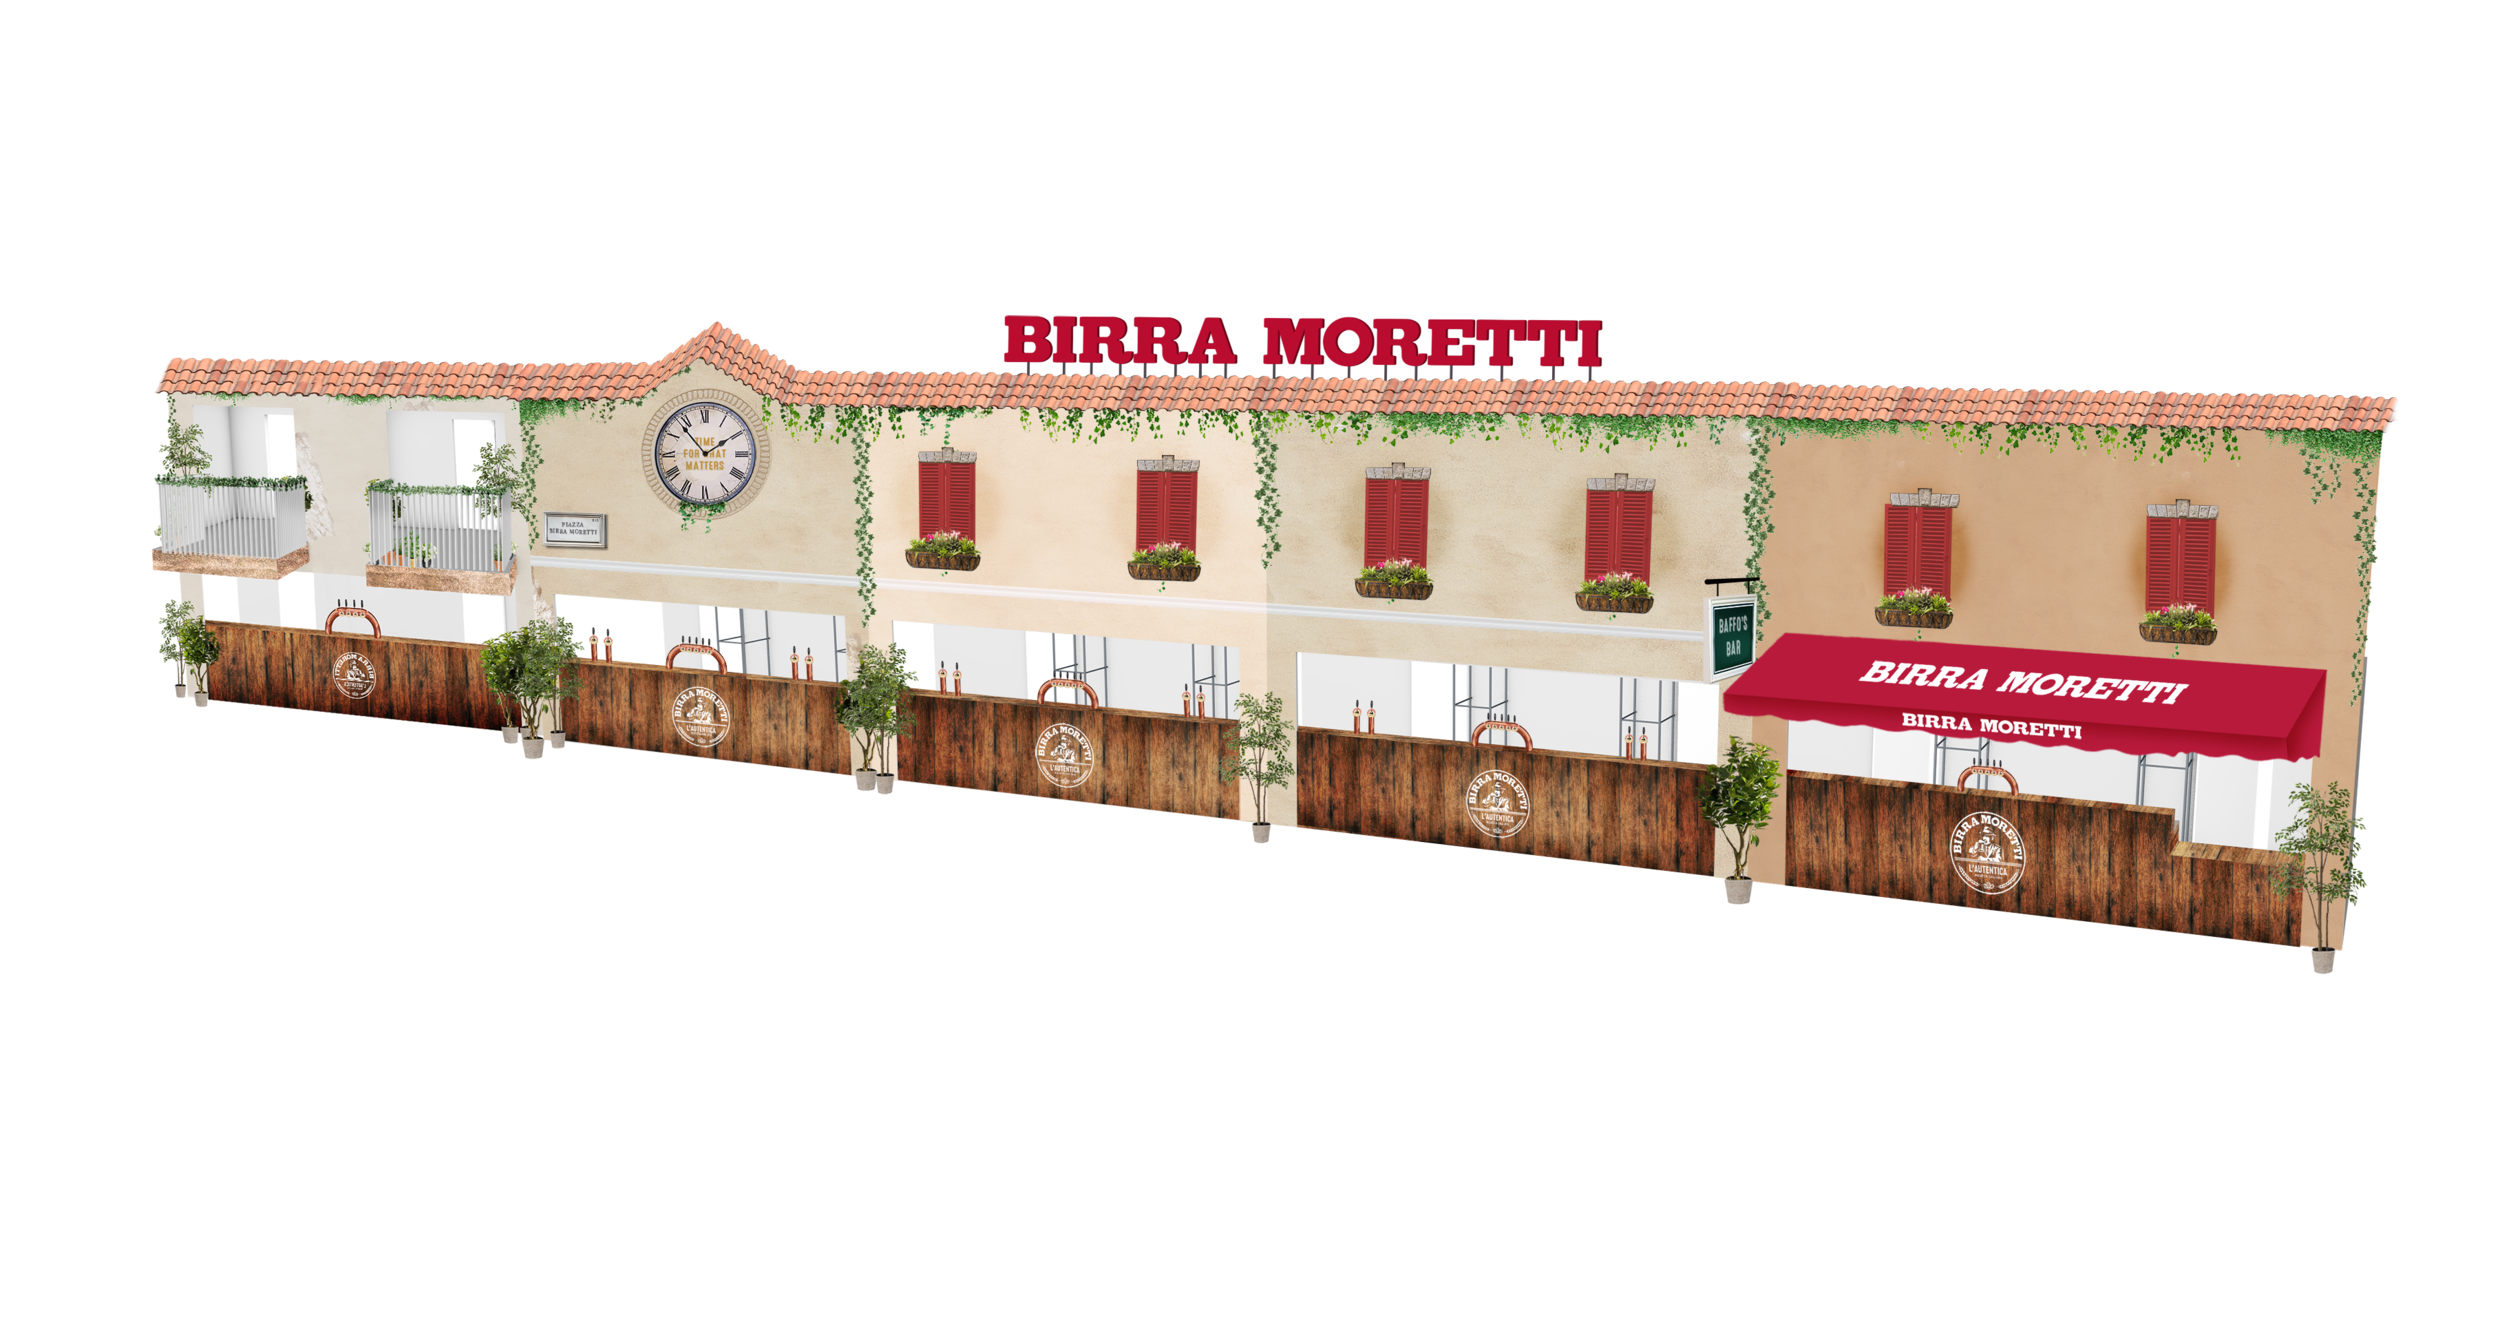 MOR0070_Moretti_BST_Piazza_2019_Right-Side V2.png